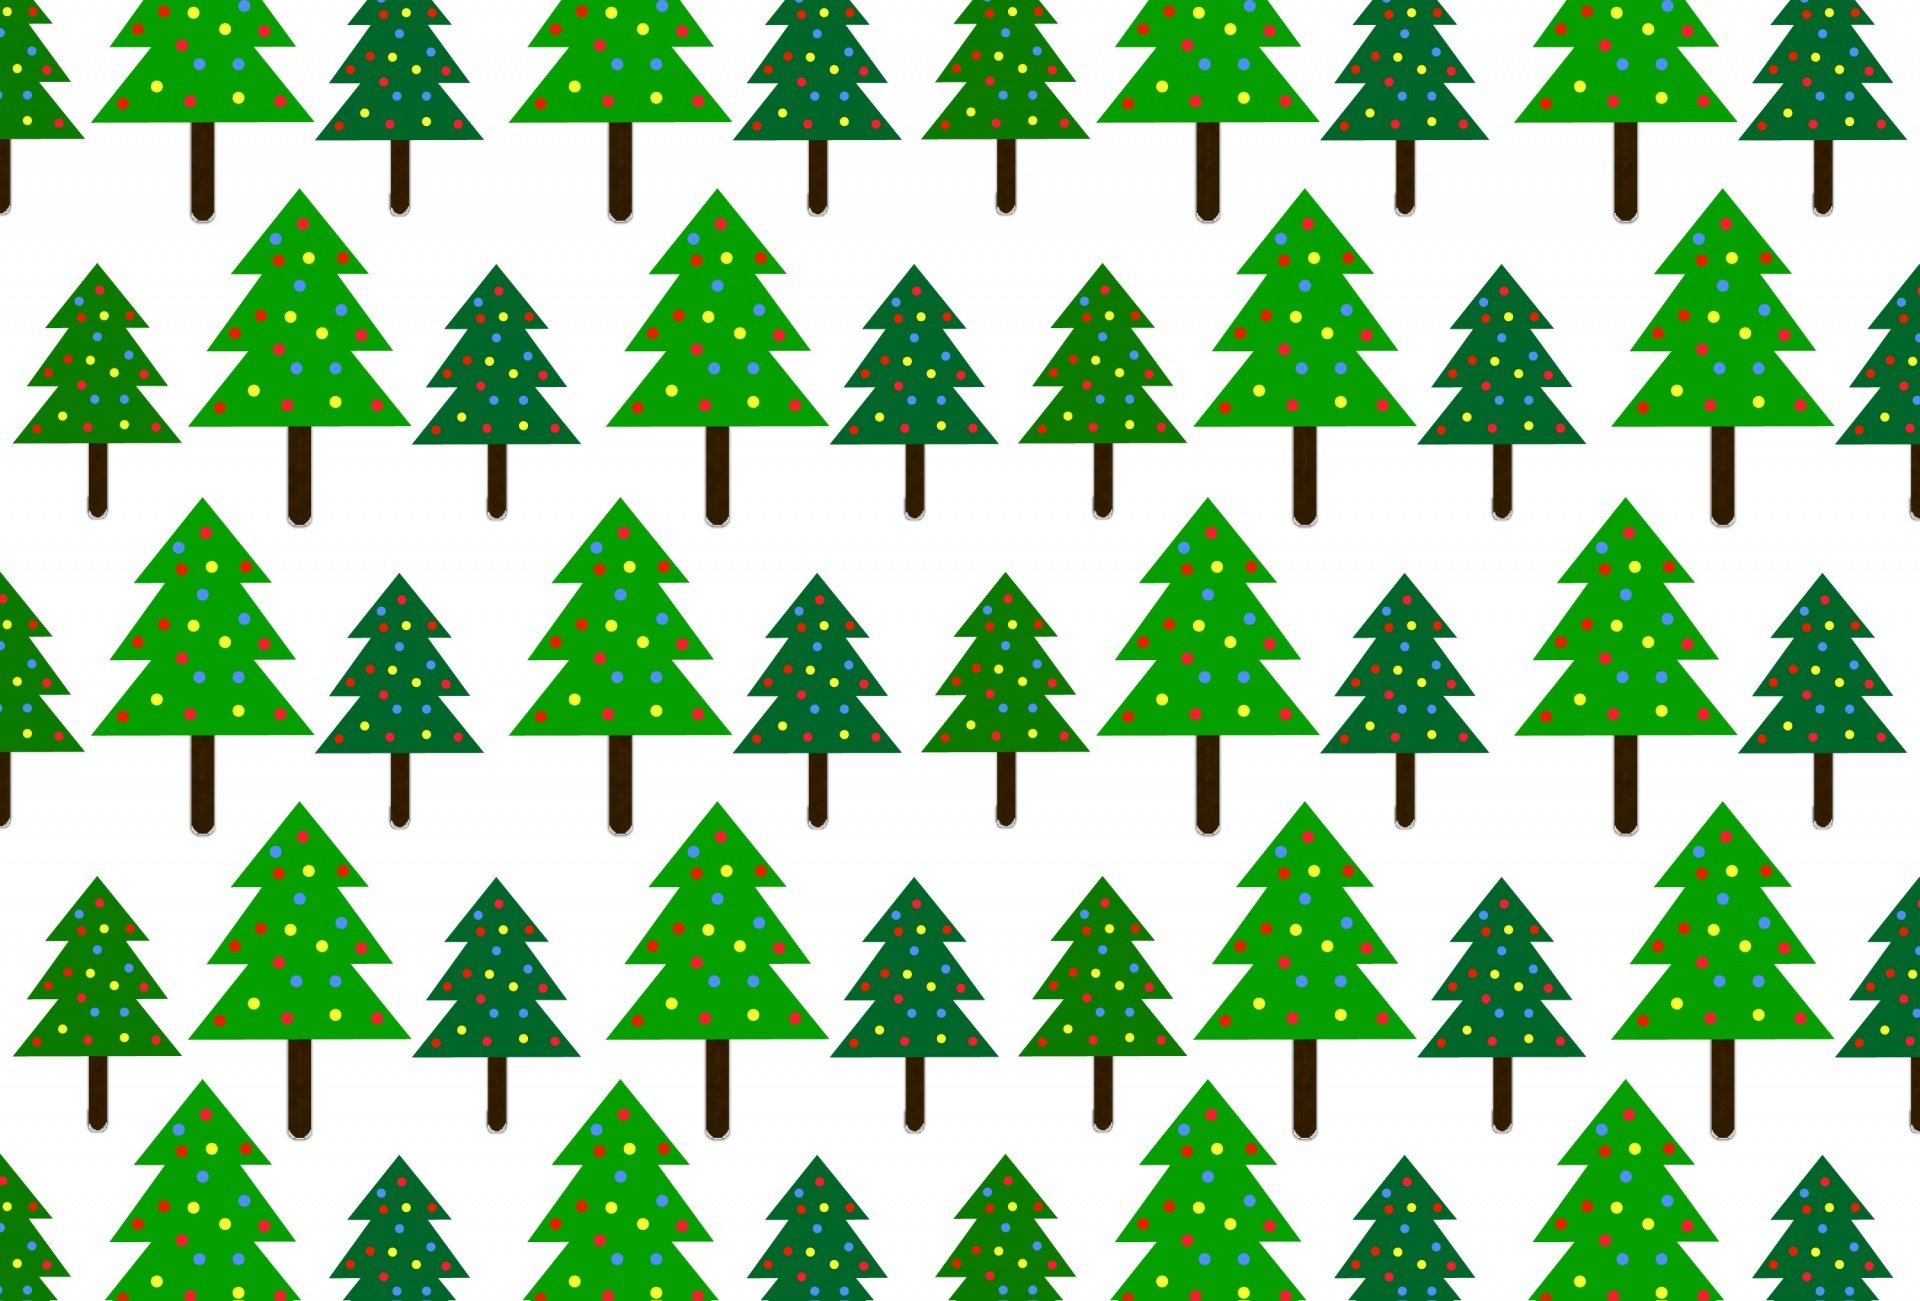 Christmas Tree Pattern.Christmas Tree Pattern Wallpaper Hd Wallpaper Background